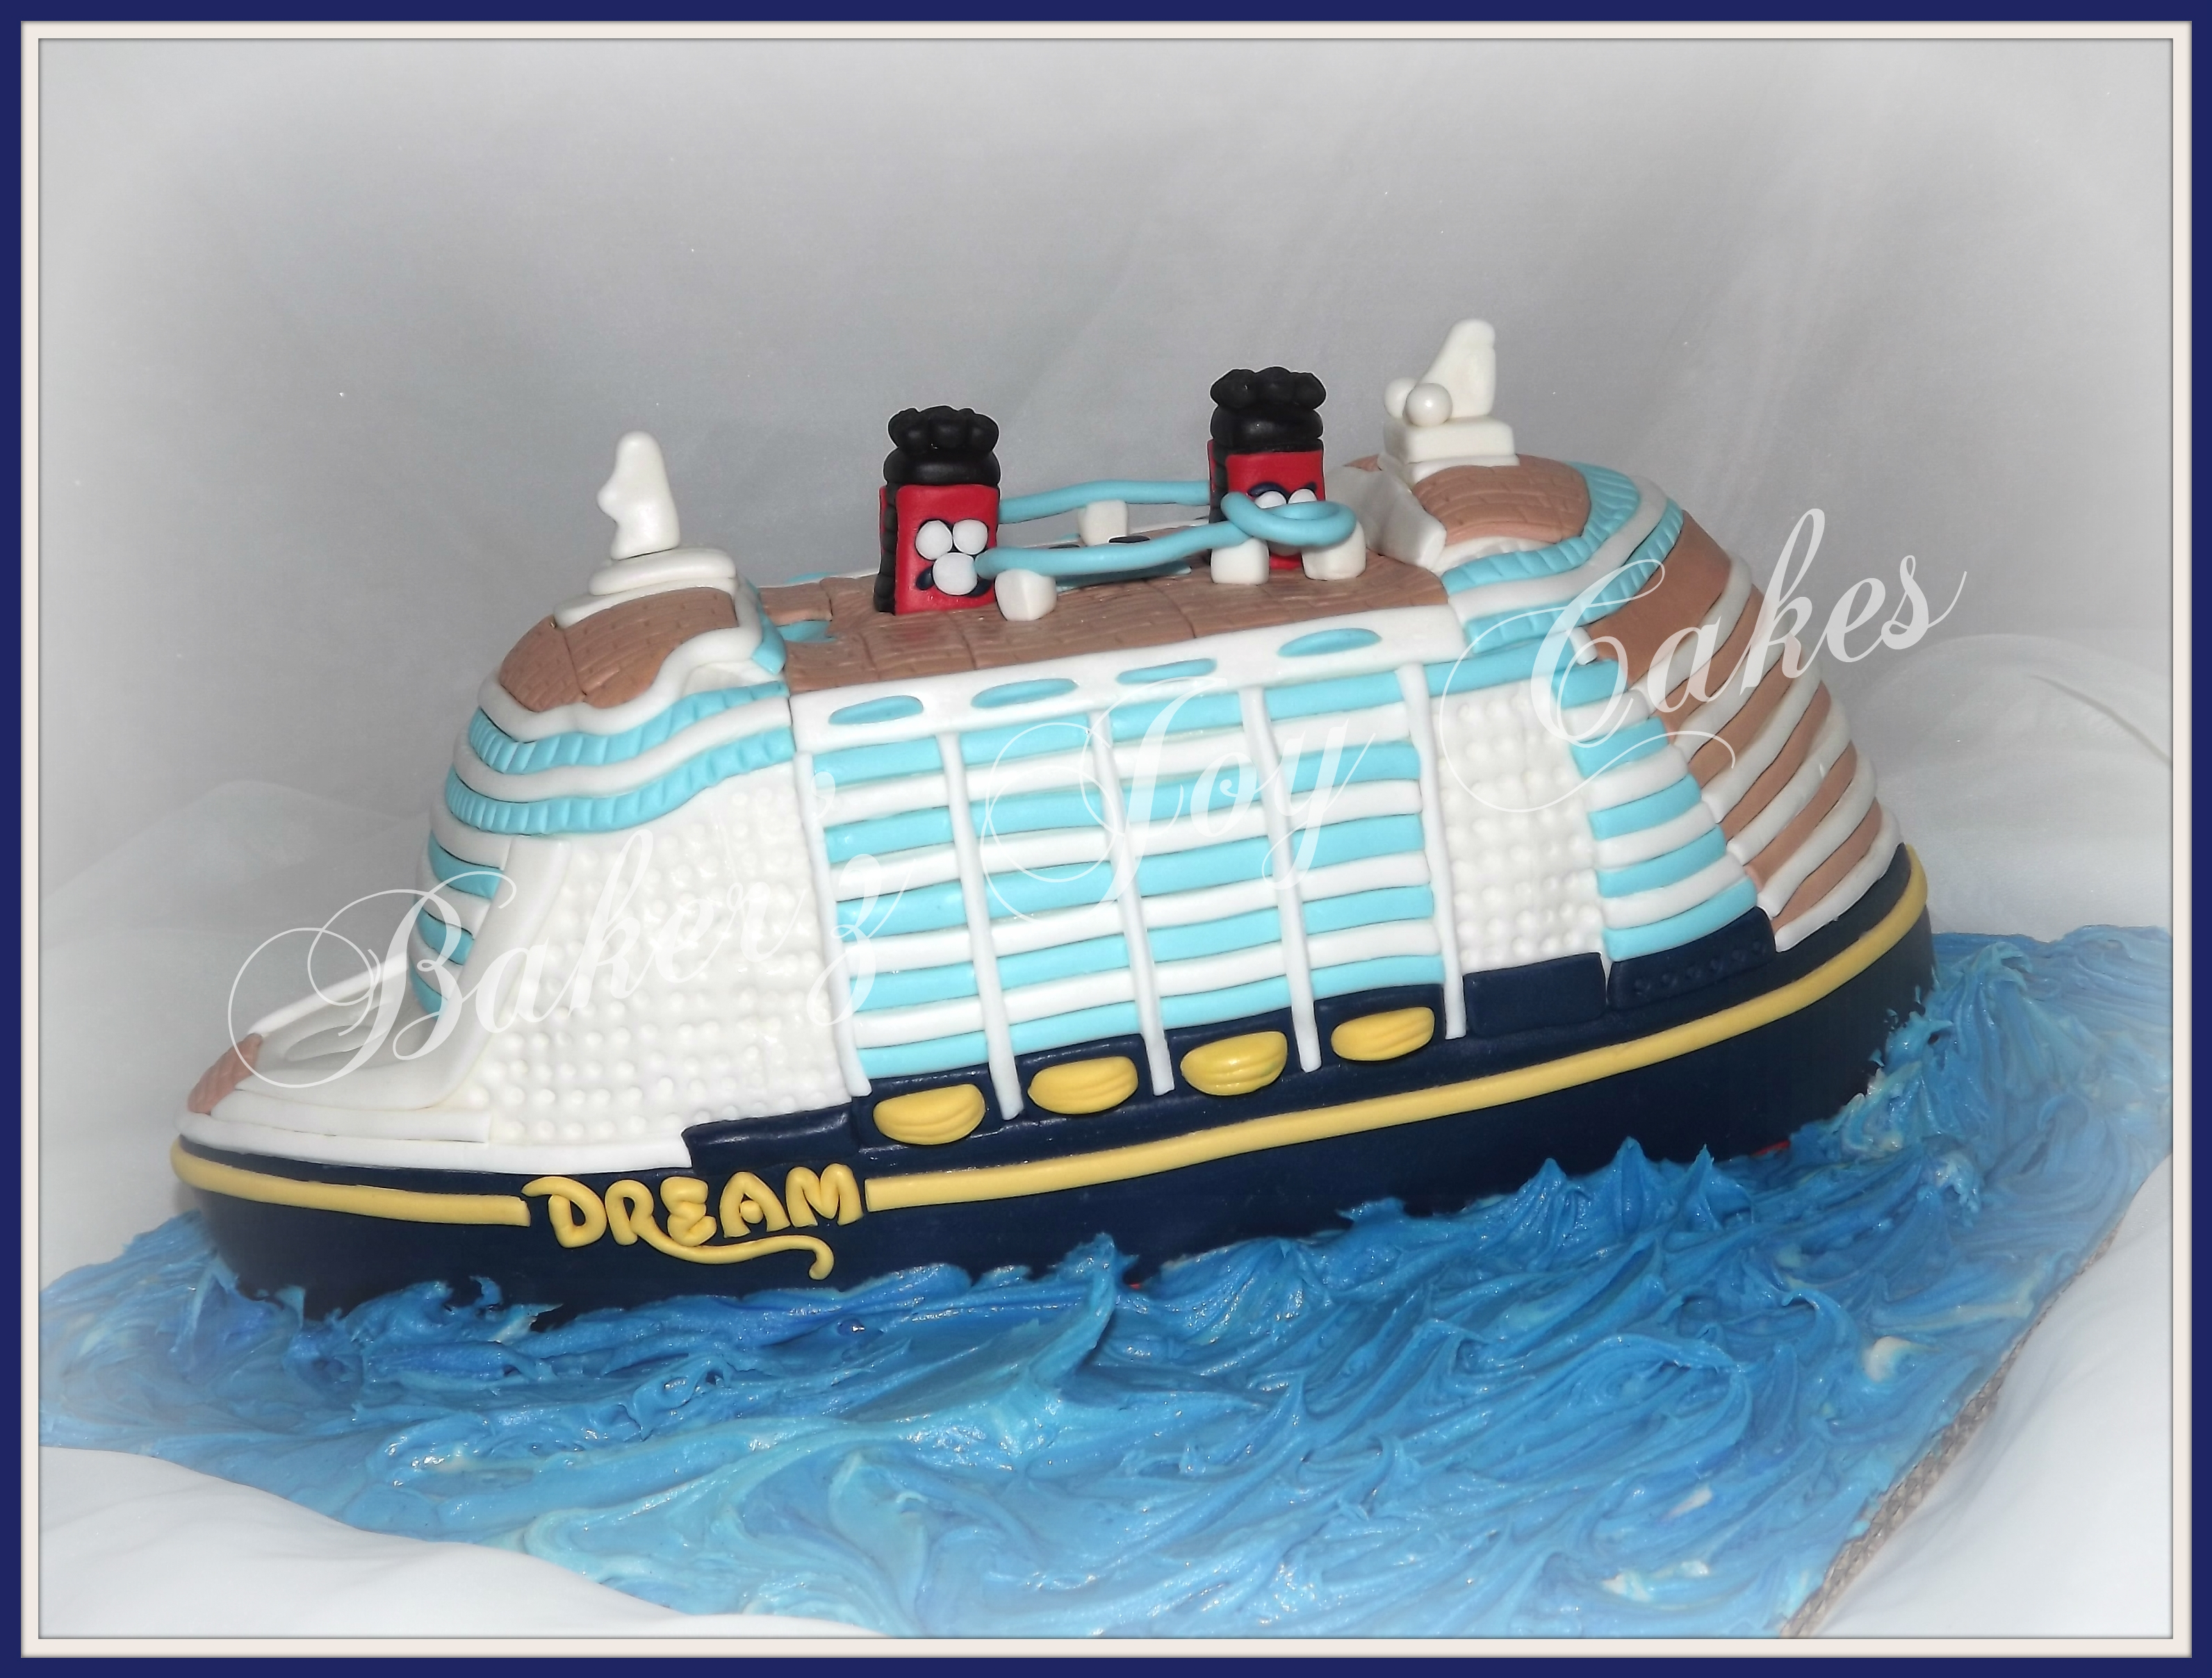 Disney Cruise Ship  My Son Logan, is having a birthday. Thought I'd share the cake he asked me to make..Oh the joys of having a Mom with a custom cake...